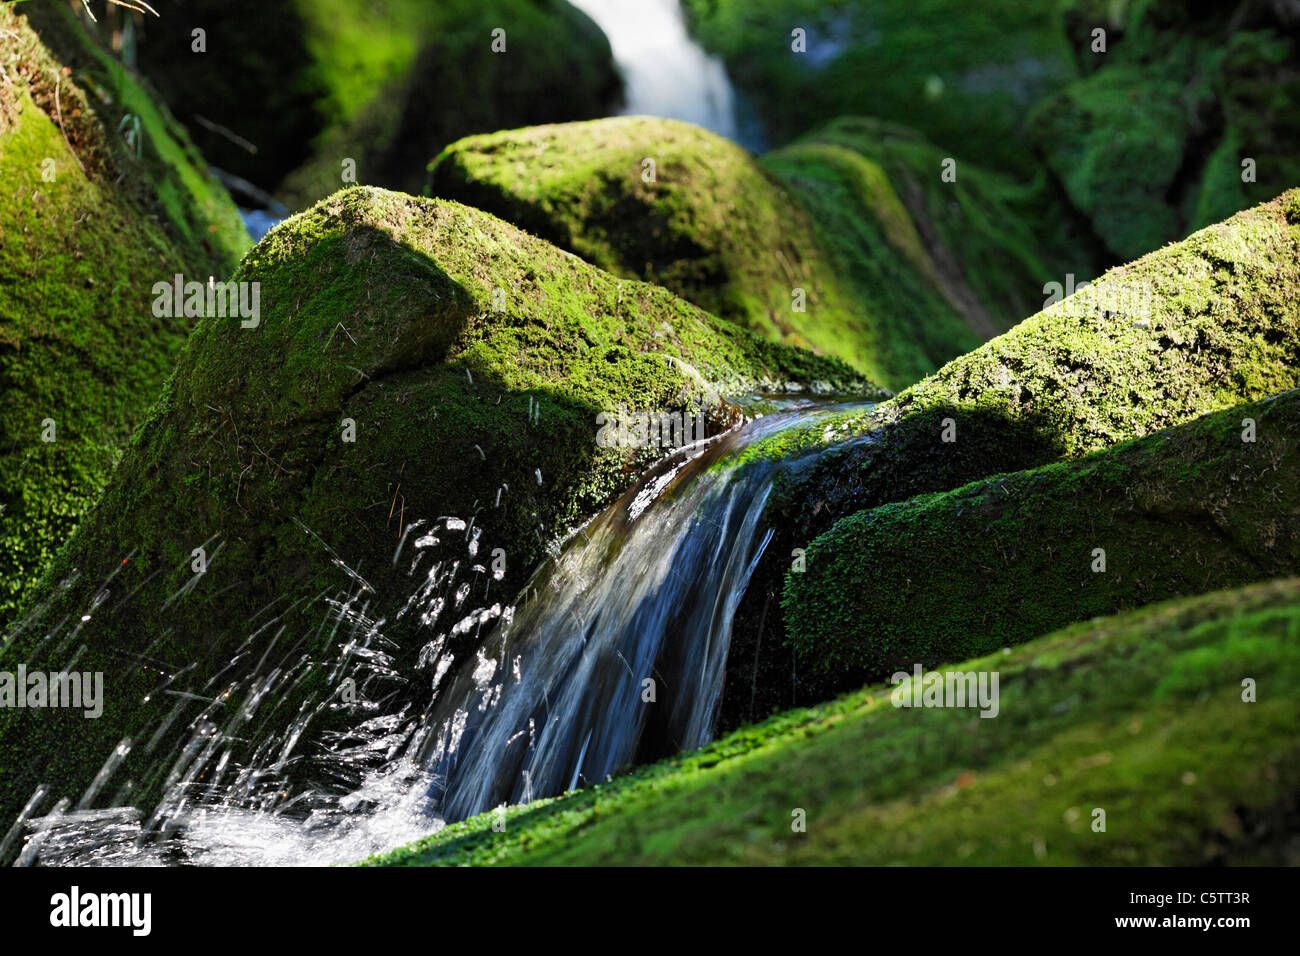 Germany, Lower Bavaria, View of waterfall in bavarian forest - Stock Image